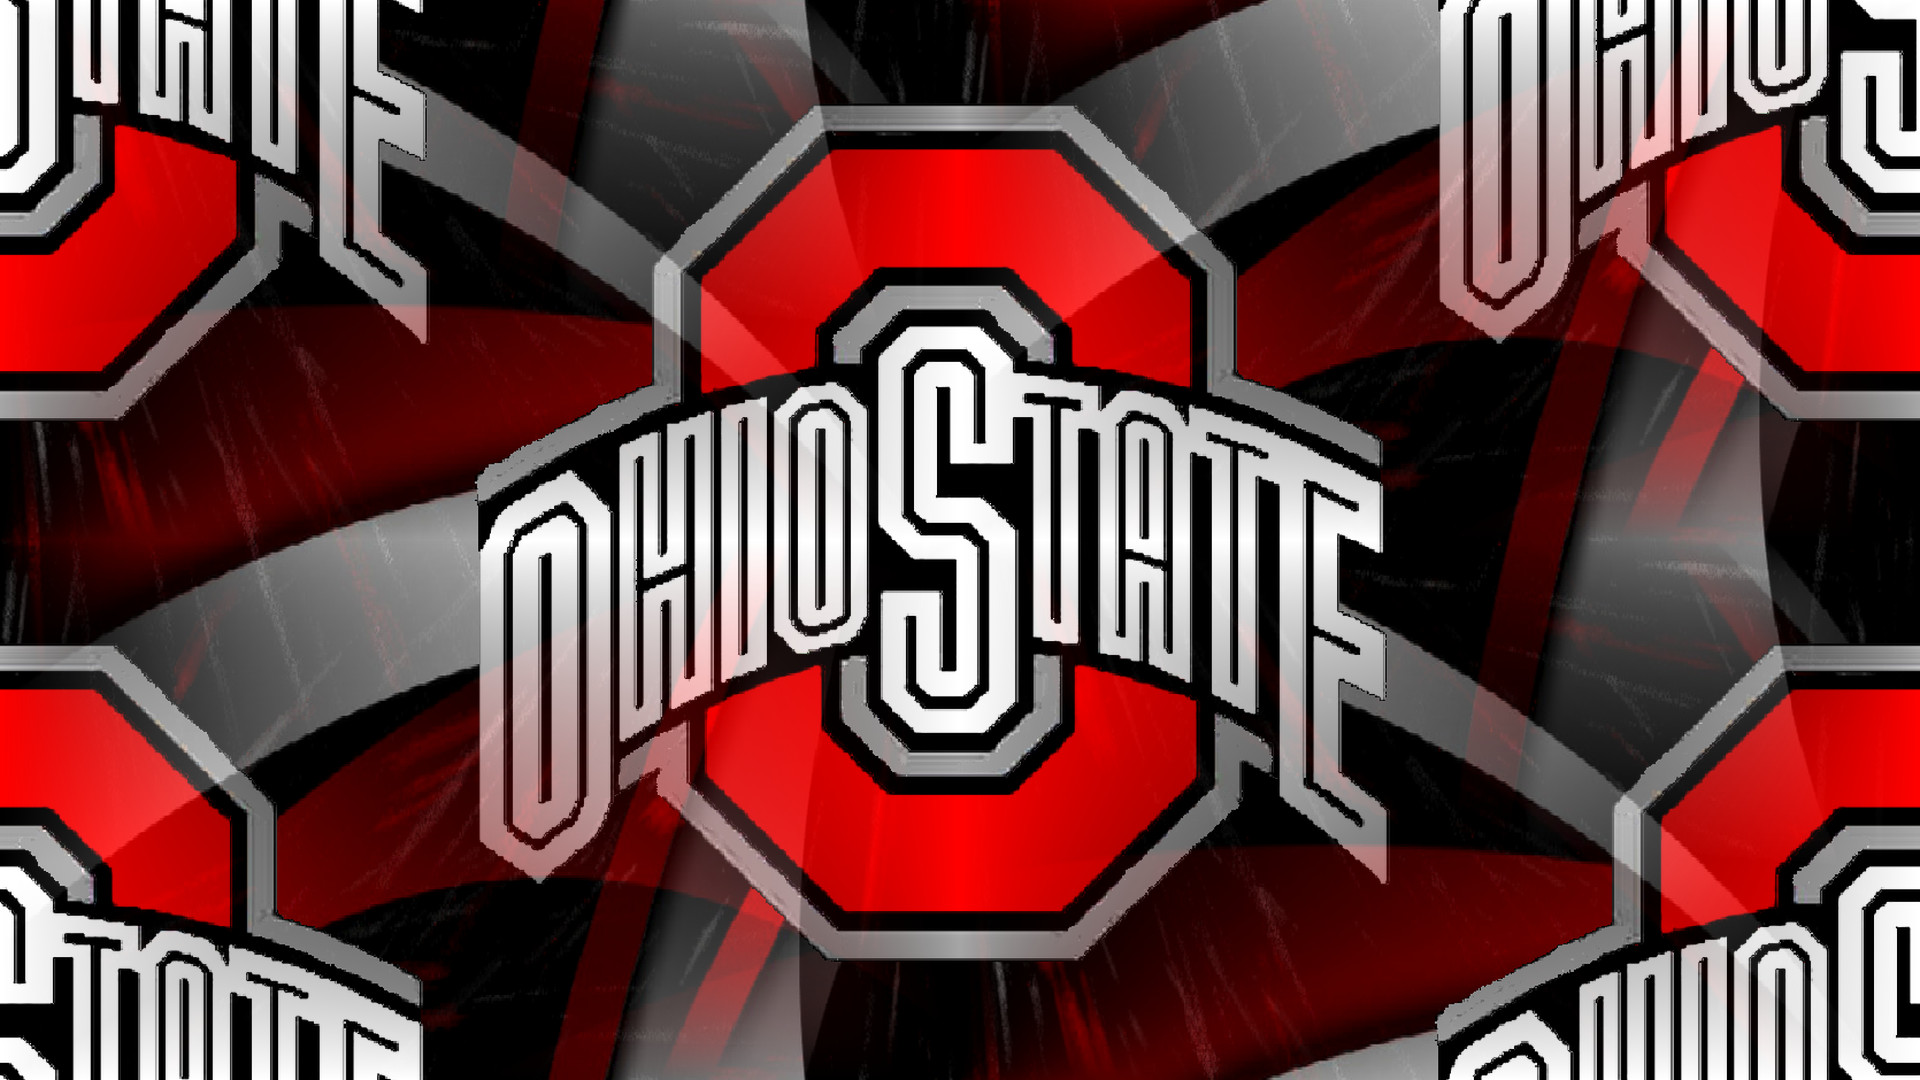 Ohio State Buckeyes images RED BLOCK O WHITE OHIO STATE ON ...